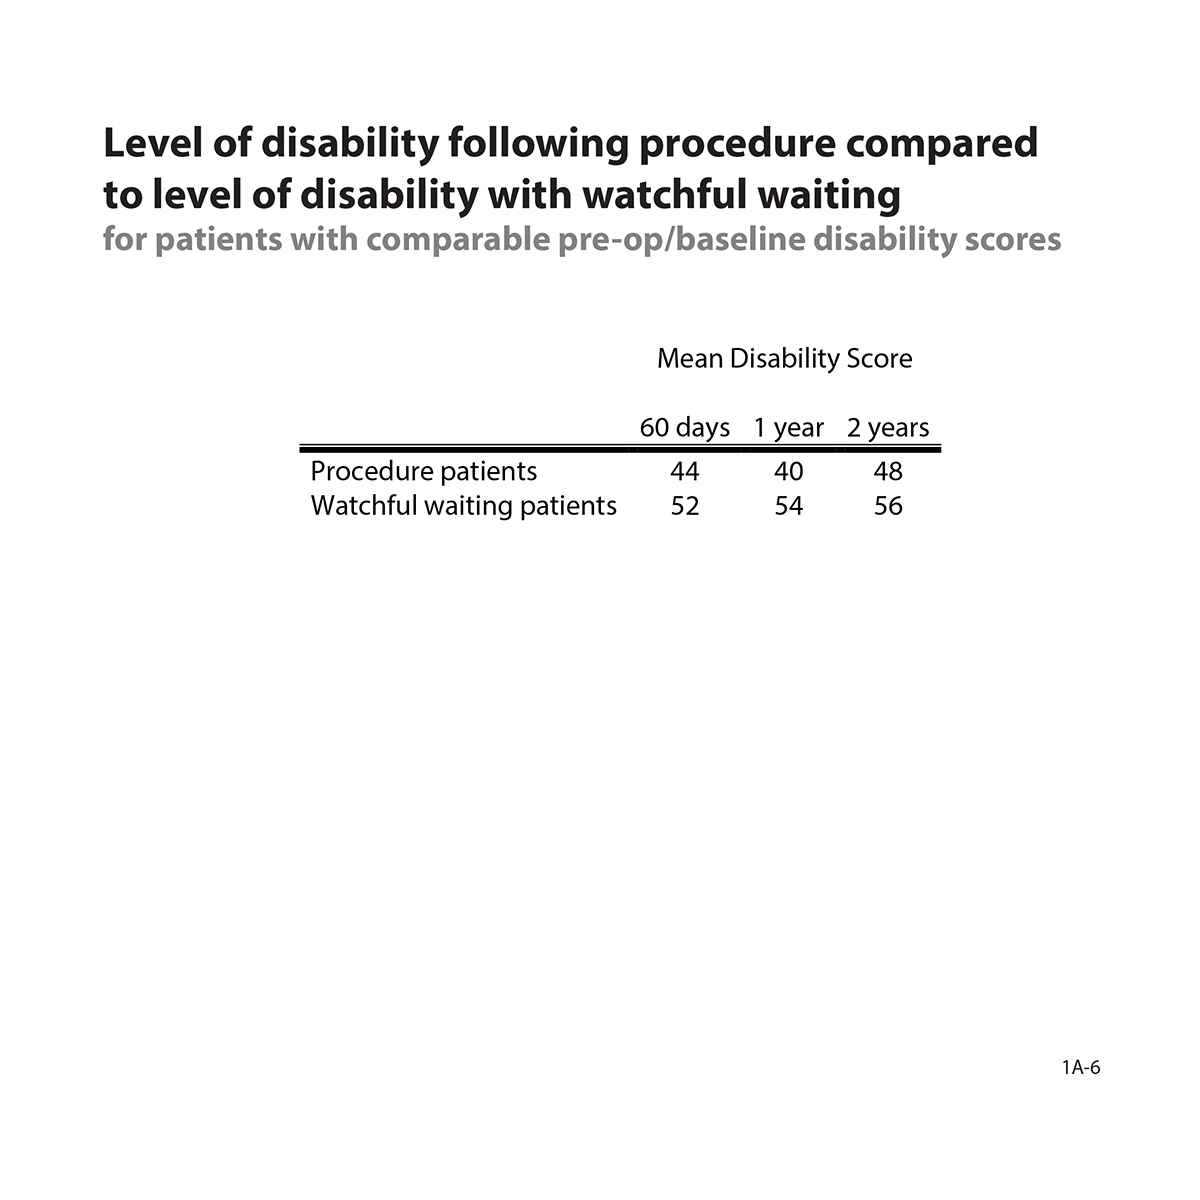 Table showing level of disability following surgery compared to level of disability with watchful waiting for patients with comparable pre-op/baseline disability scores.